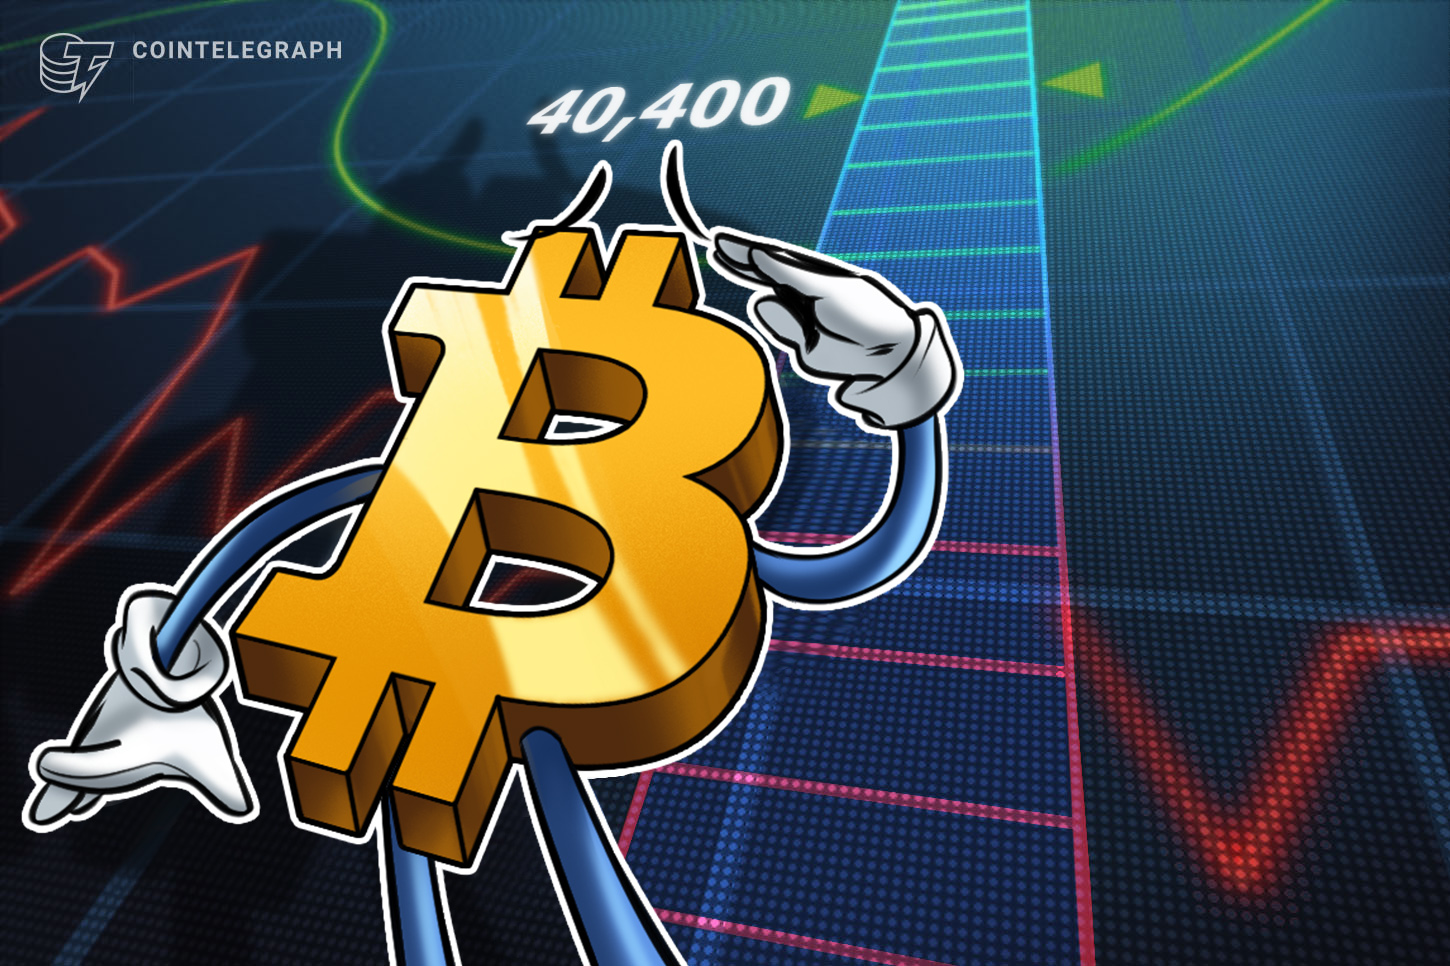 Analysts identify $40K as the make or break it level for Bitcoin price